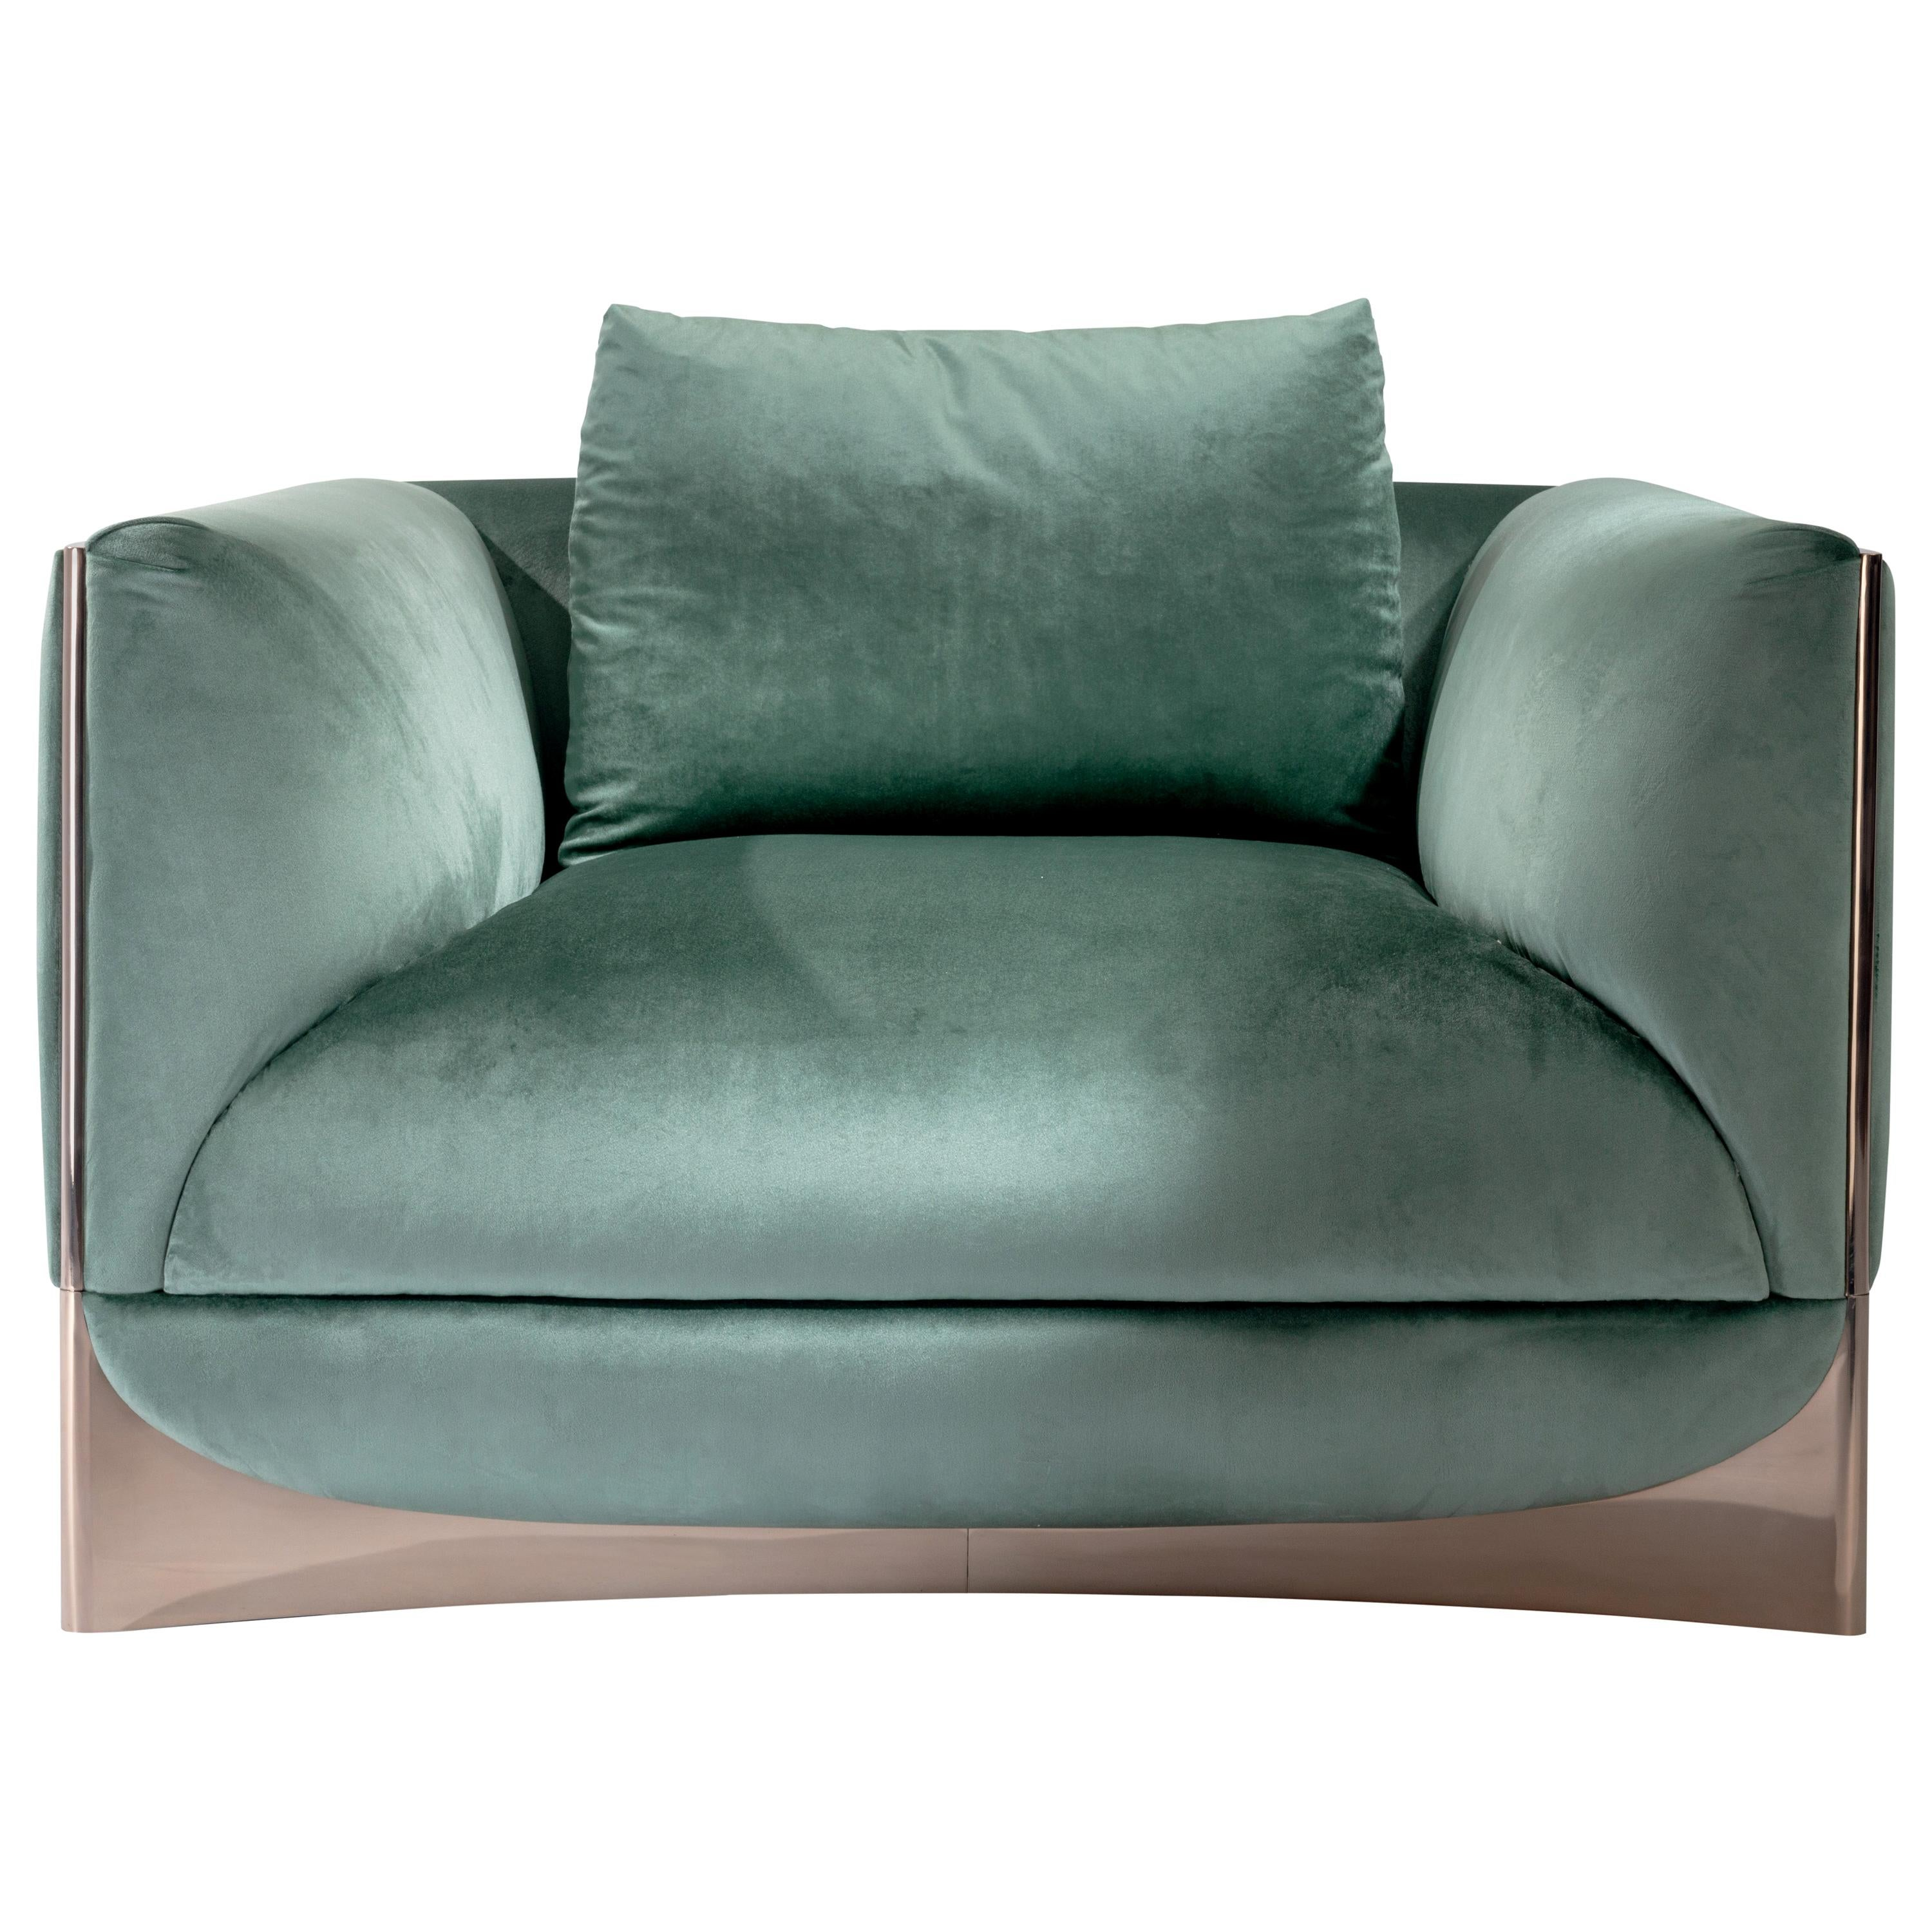 Visionnaire Cà Foscari Armchair in Wood with Upholstery by Alessandro La Spada